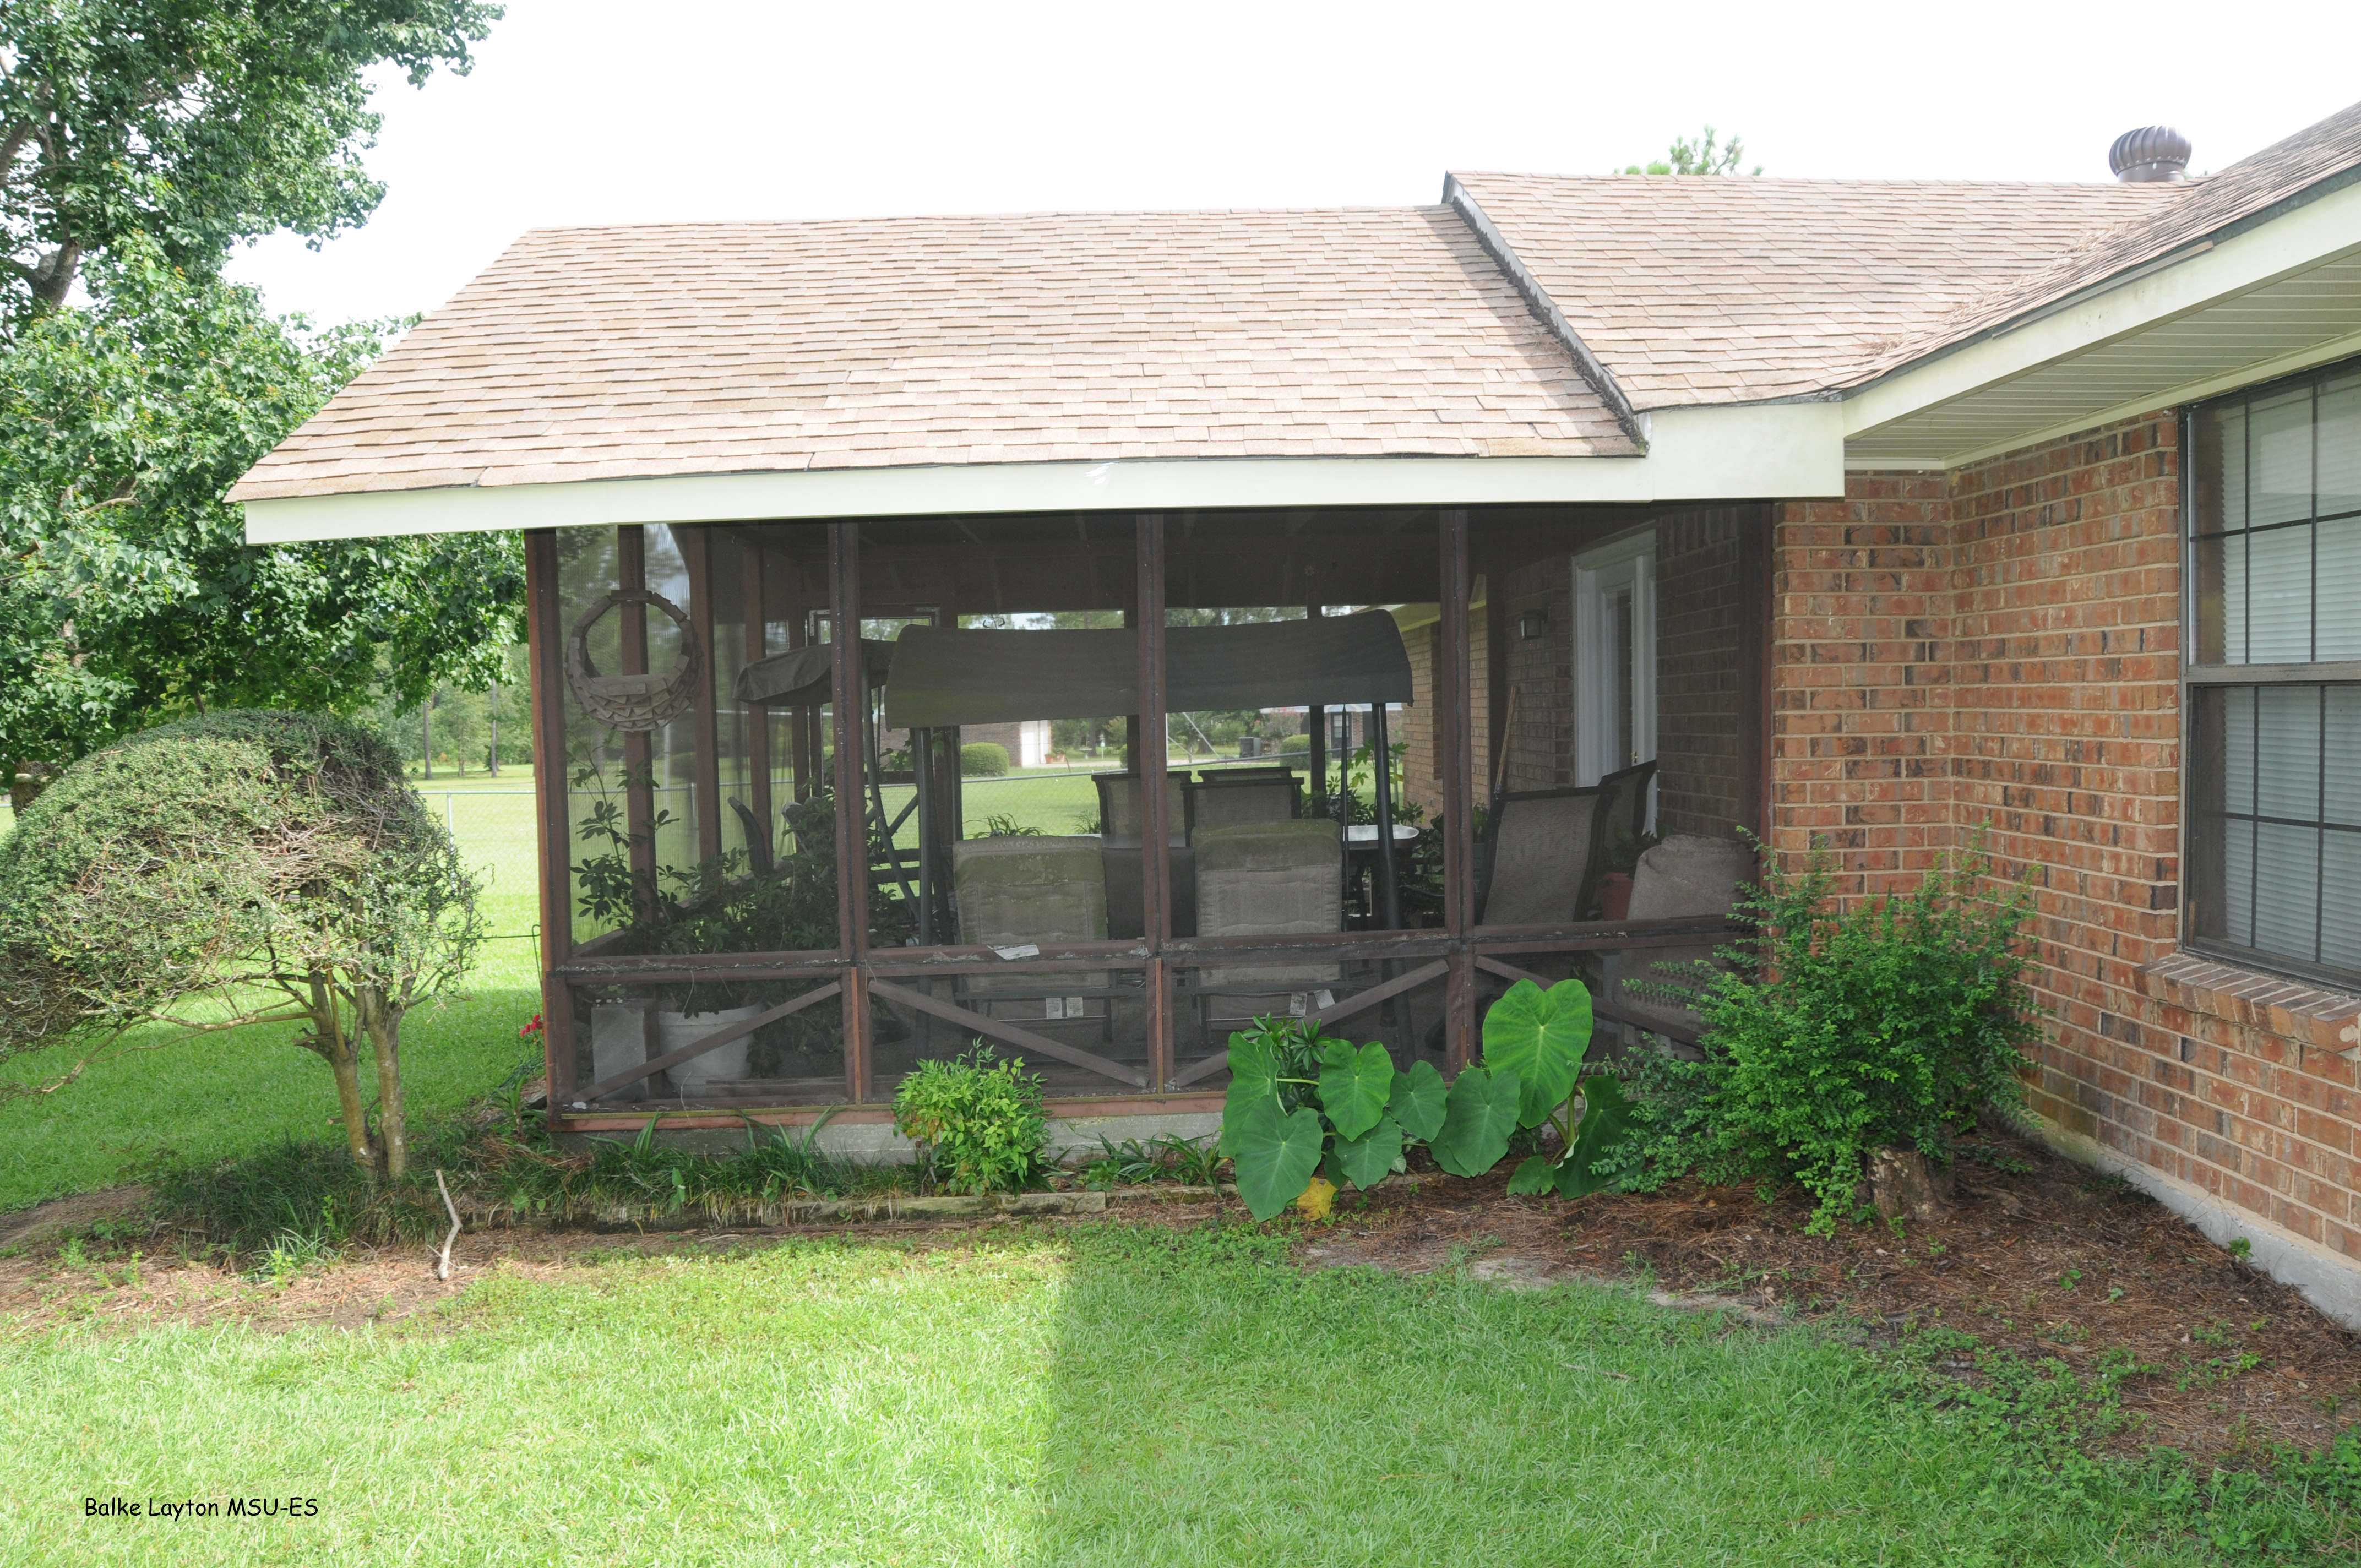 Adding a room, such as this screened-in porch, and not having it properly pretreated is a common cause of termite infestations.